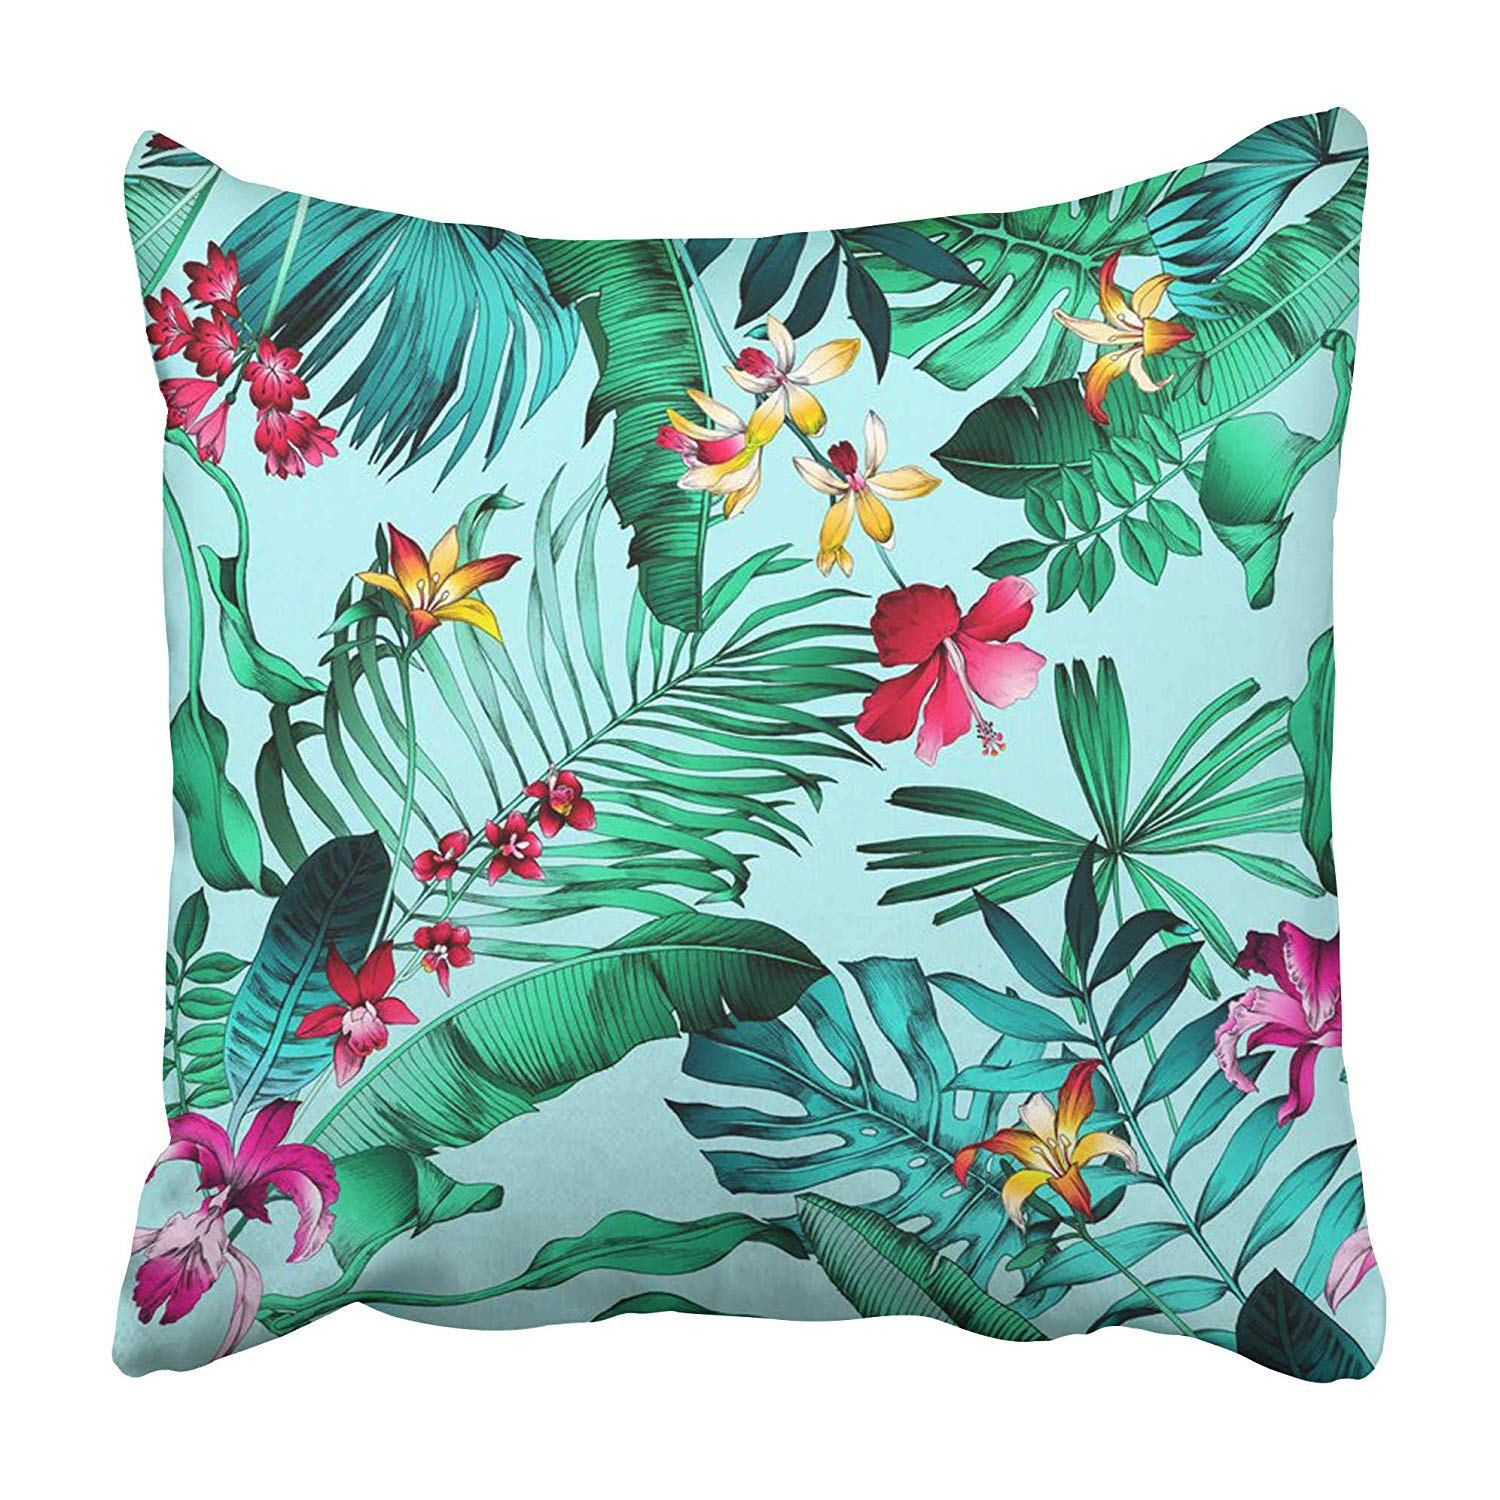 CMFUN Bright Multi Color Realistic Tropical with Monstera Leaves Palm and Banana Leaf Pillowcase 16x16 inch